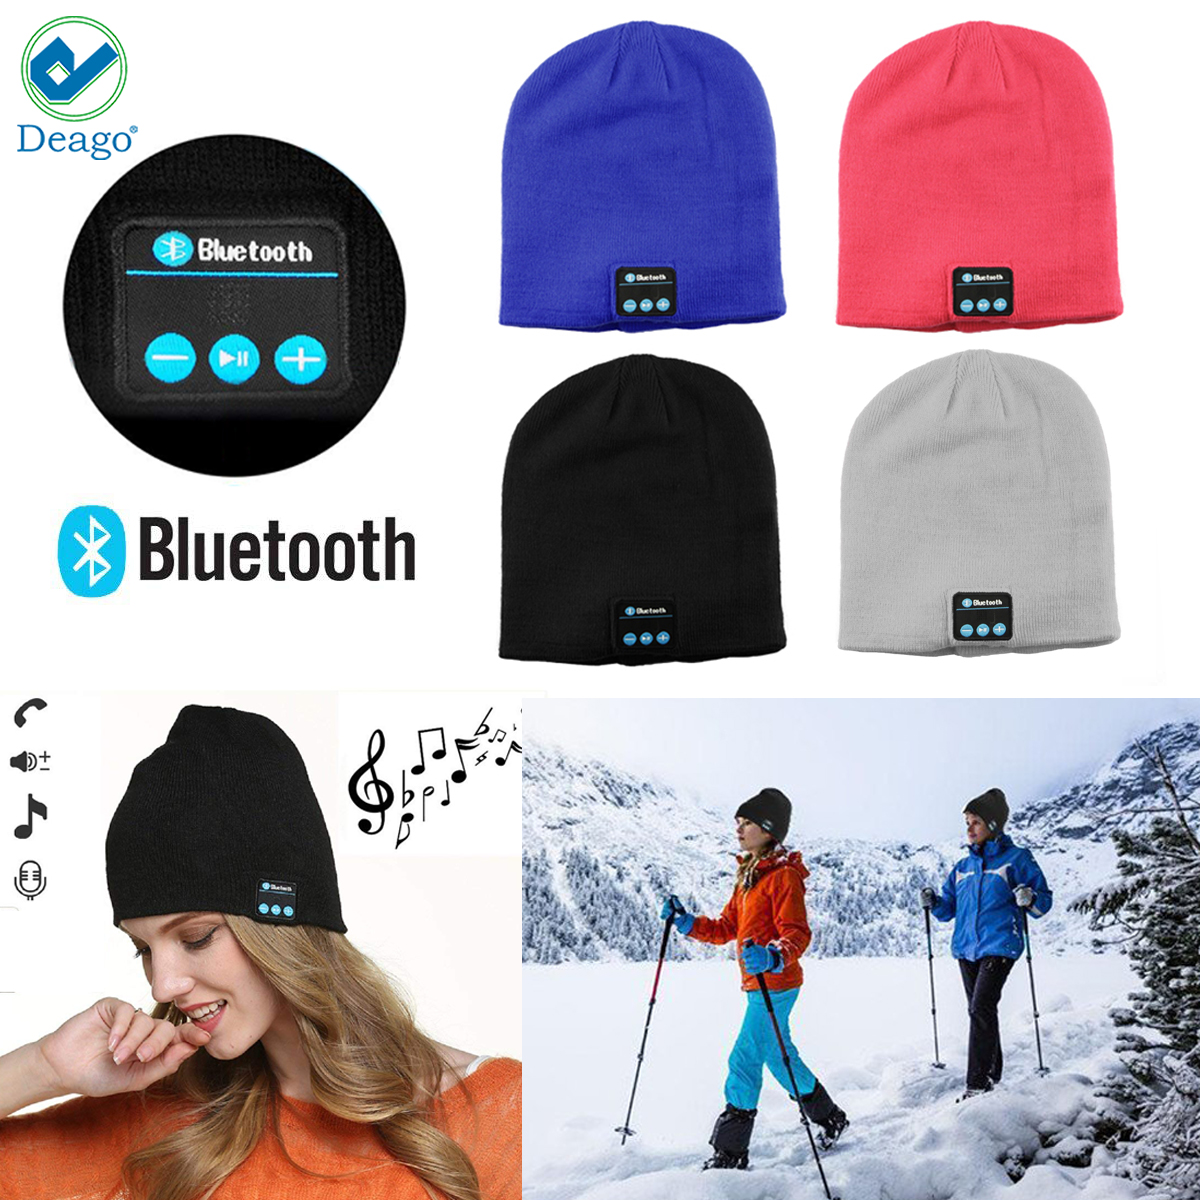 Deago Bluetooth Headphones Beanie Knit Hat Cap Wireless Running Music Hat with 2 Speakers & Mic Headset for Unisex Men Women / Black